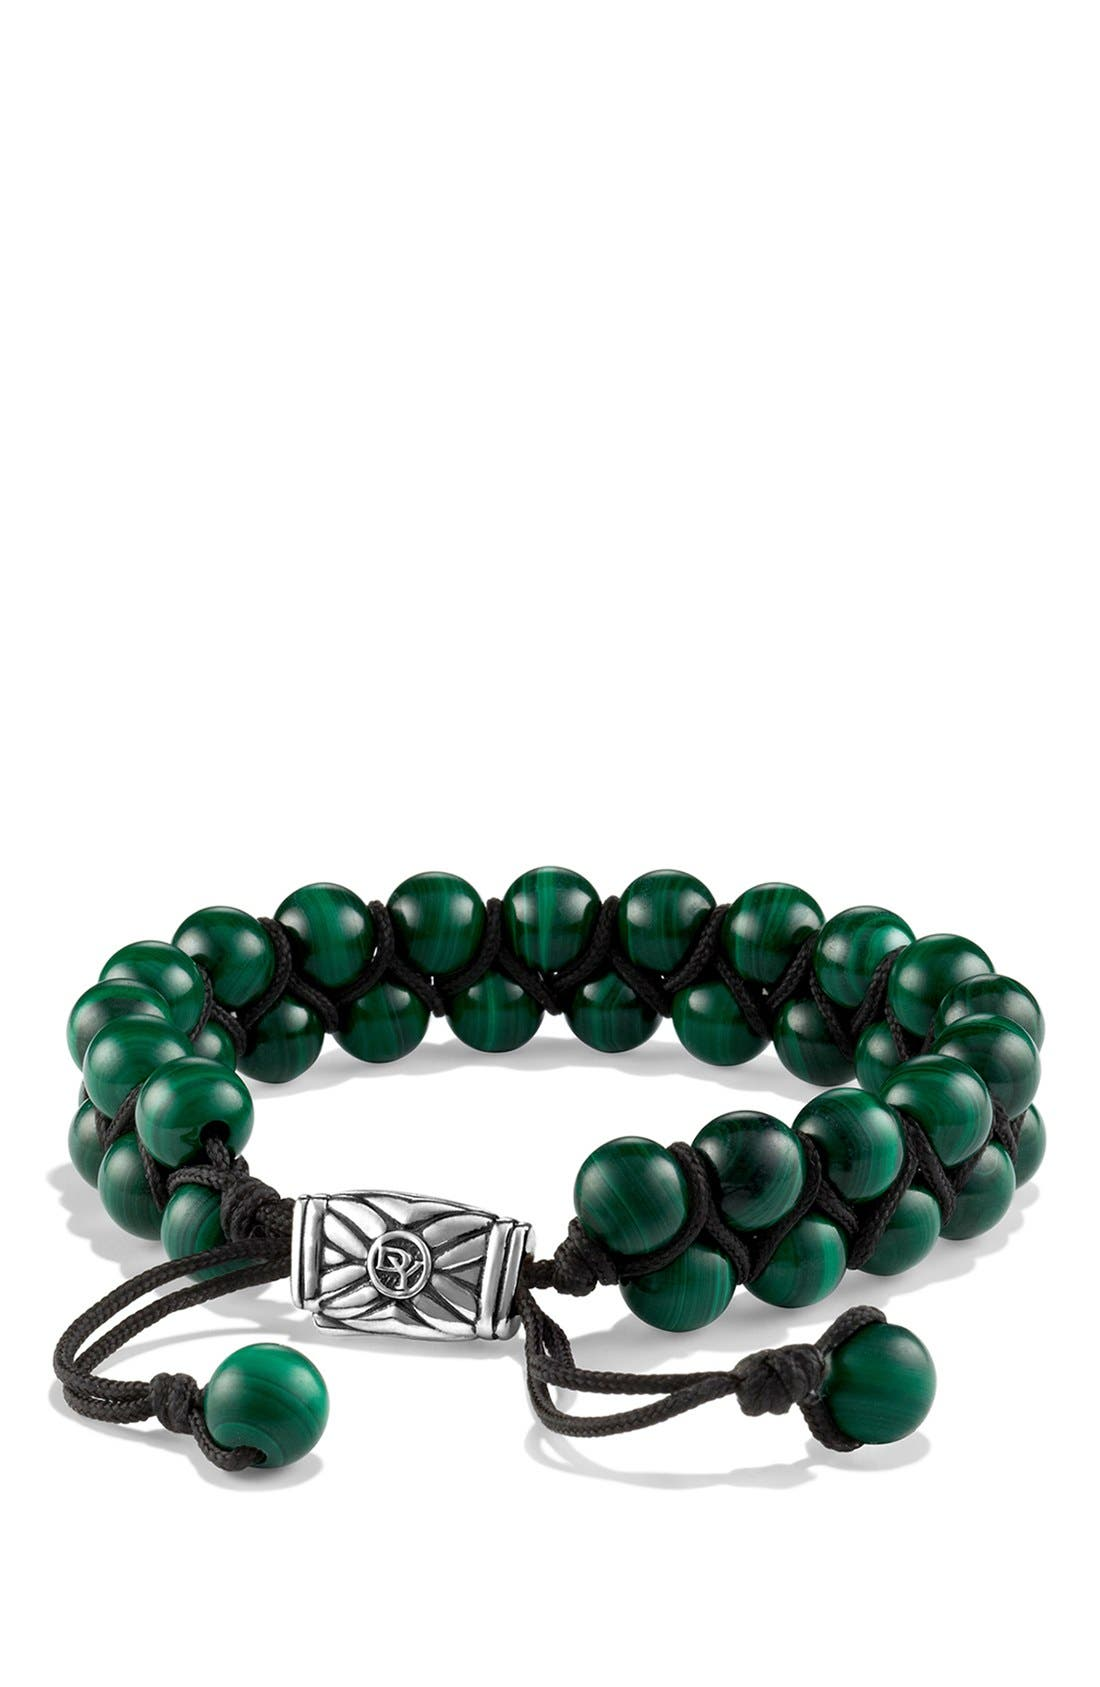 Alternate Image 1 Selected - David Yurman 'Spiritual Beads' Two-Row Bracelet with Malachite